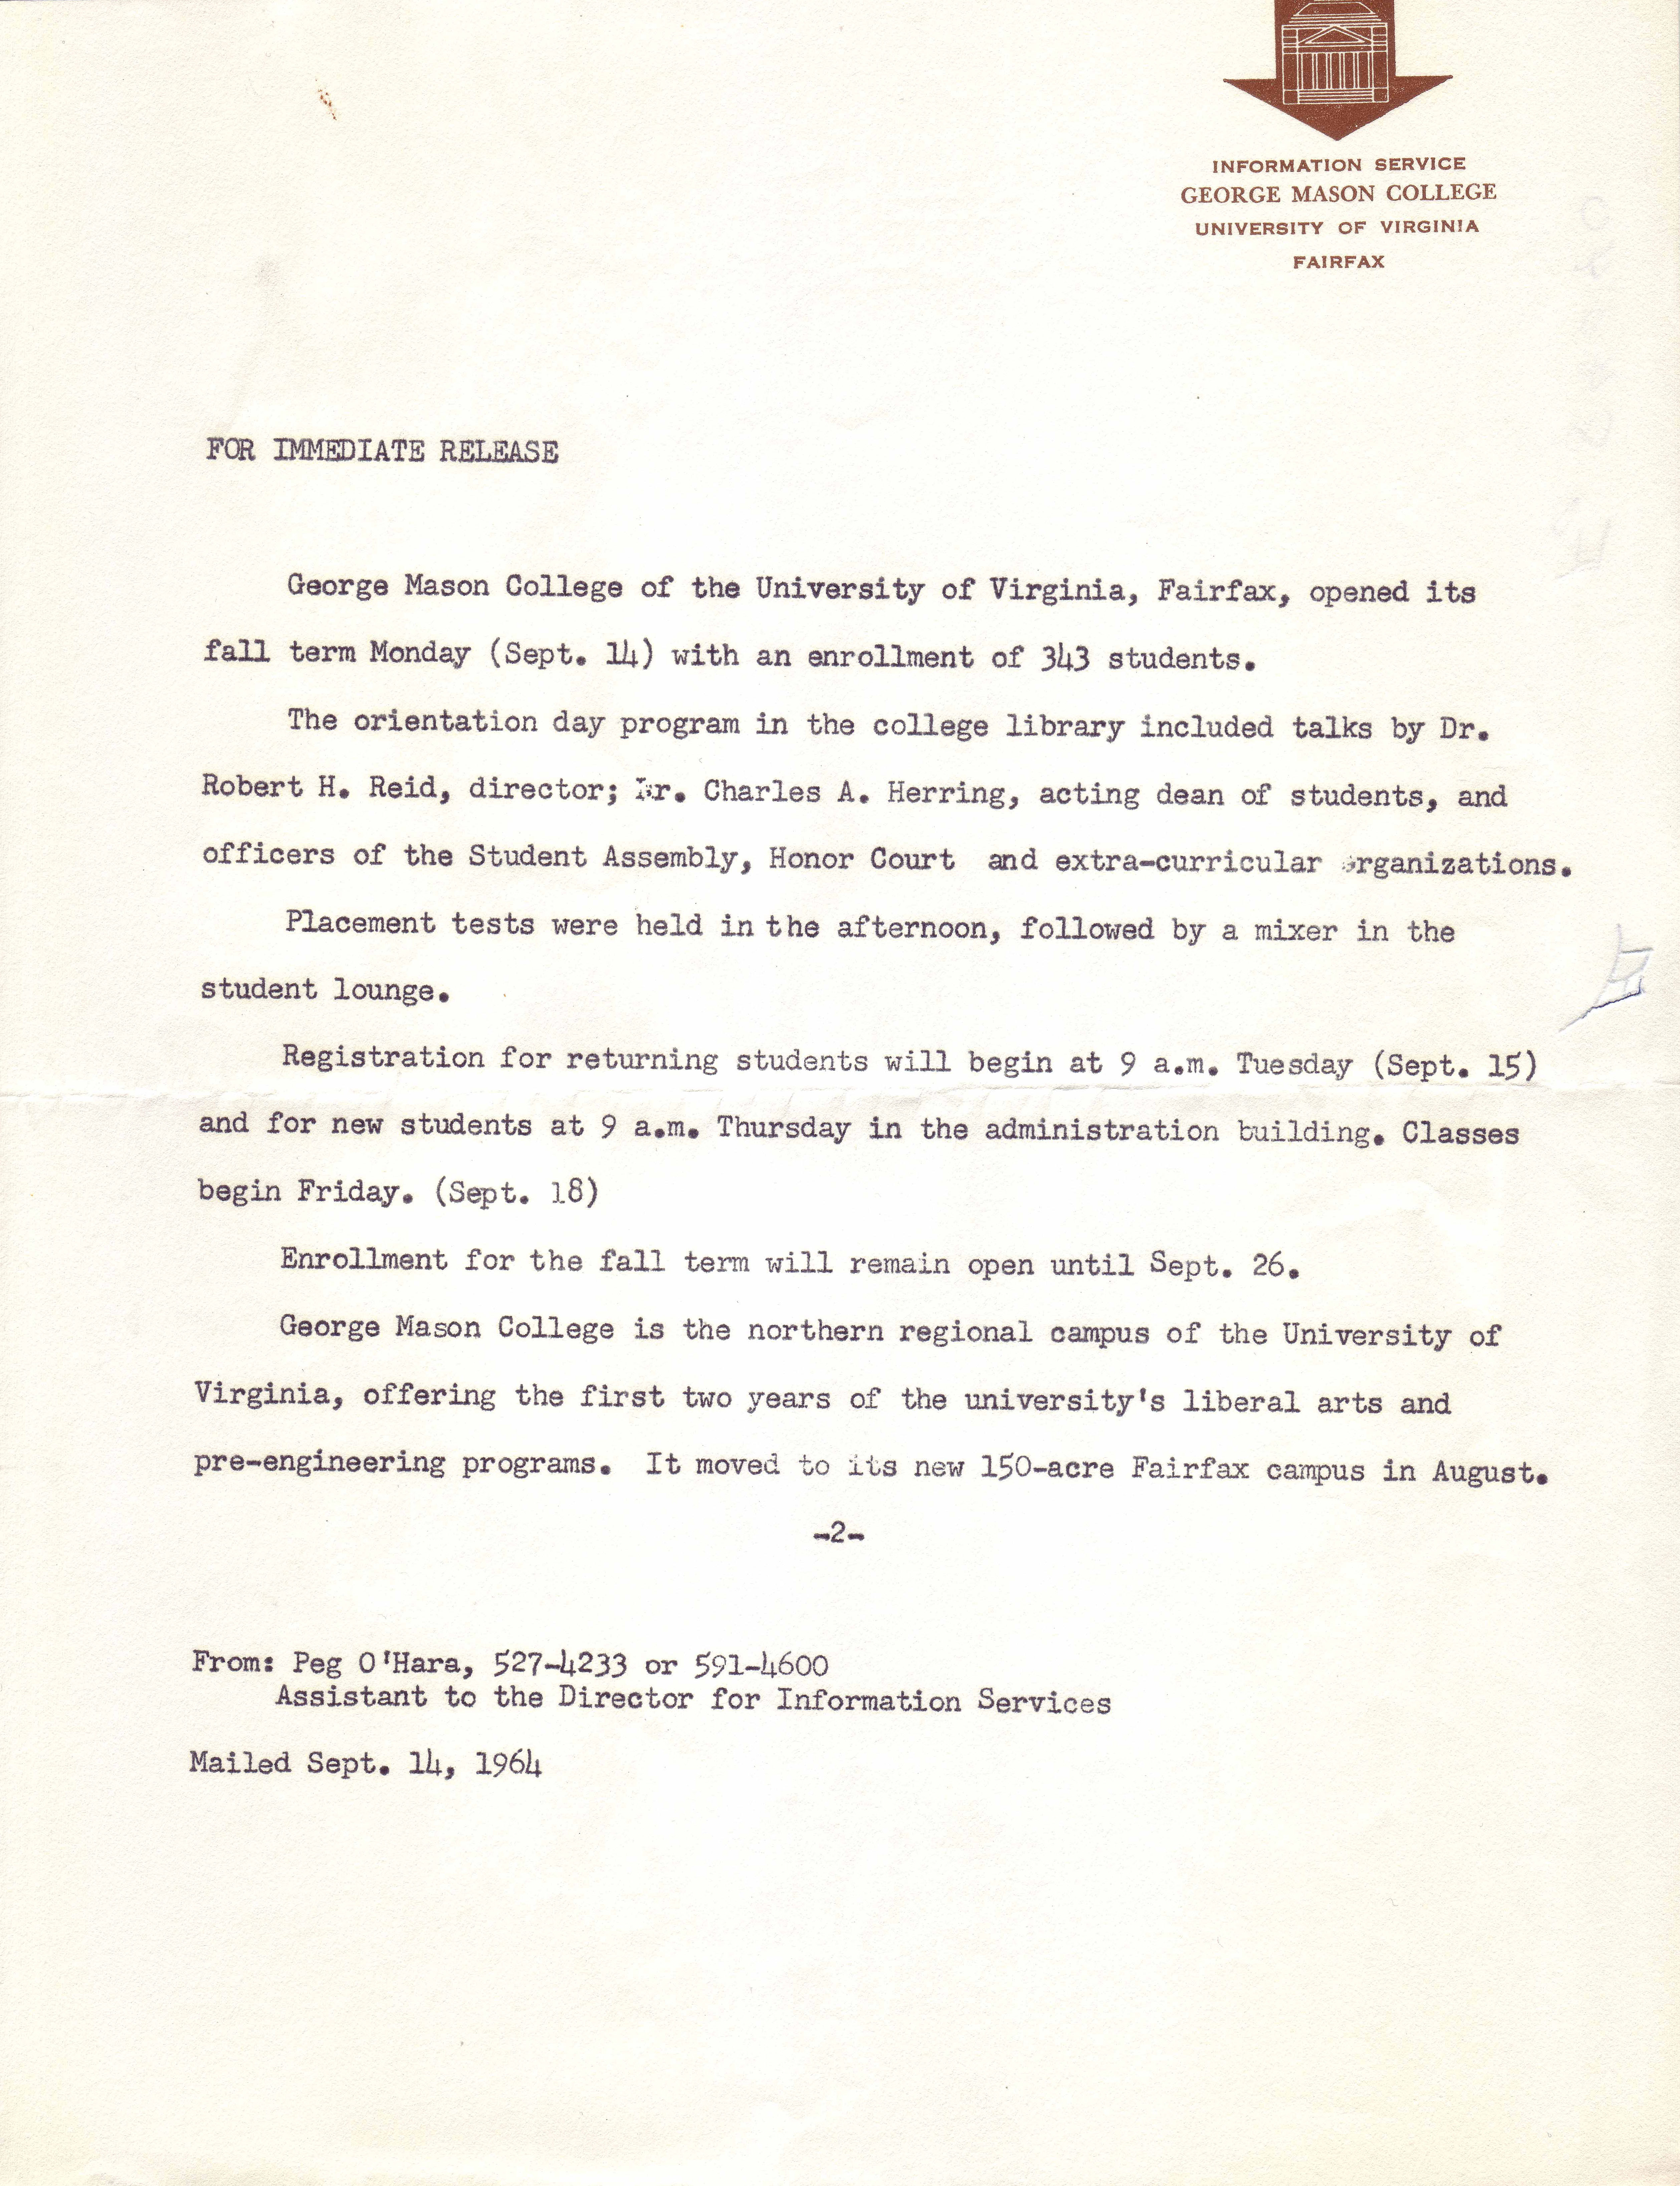 Press release, George Mason College of the University of Virginia, September 14, 1964